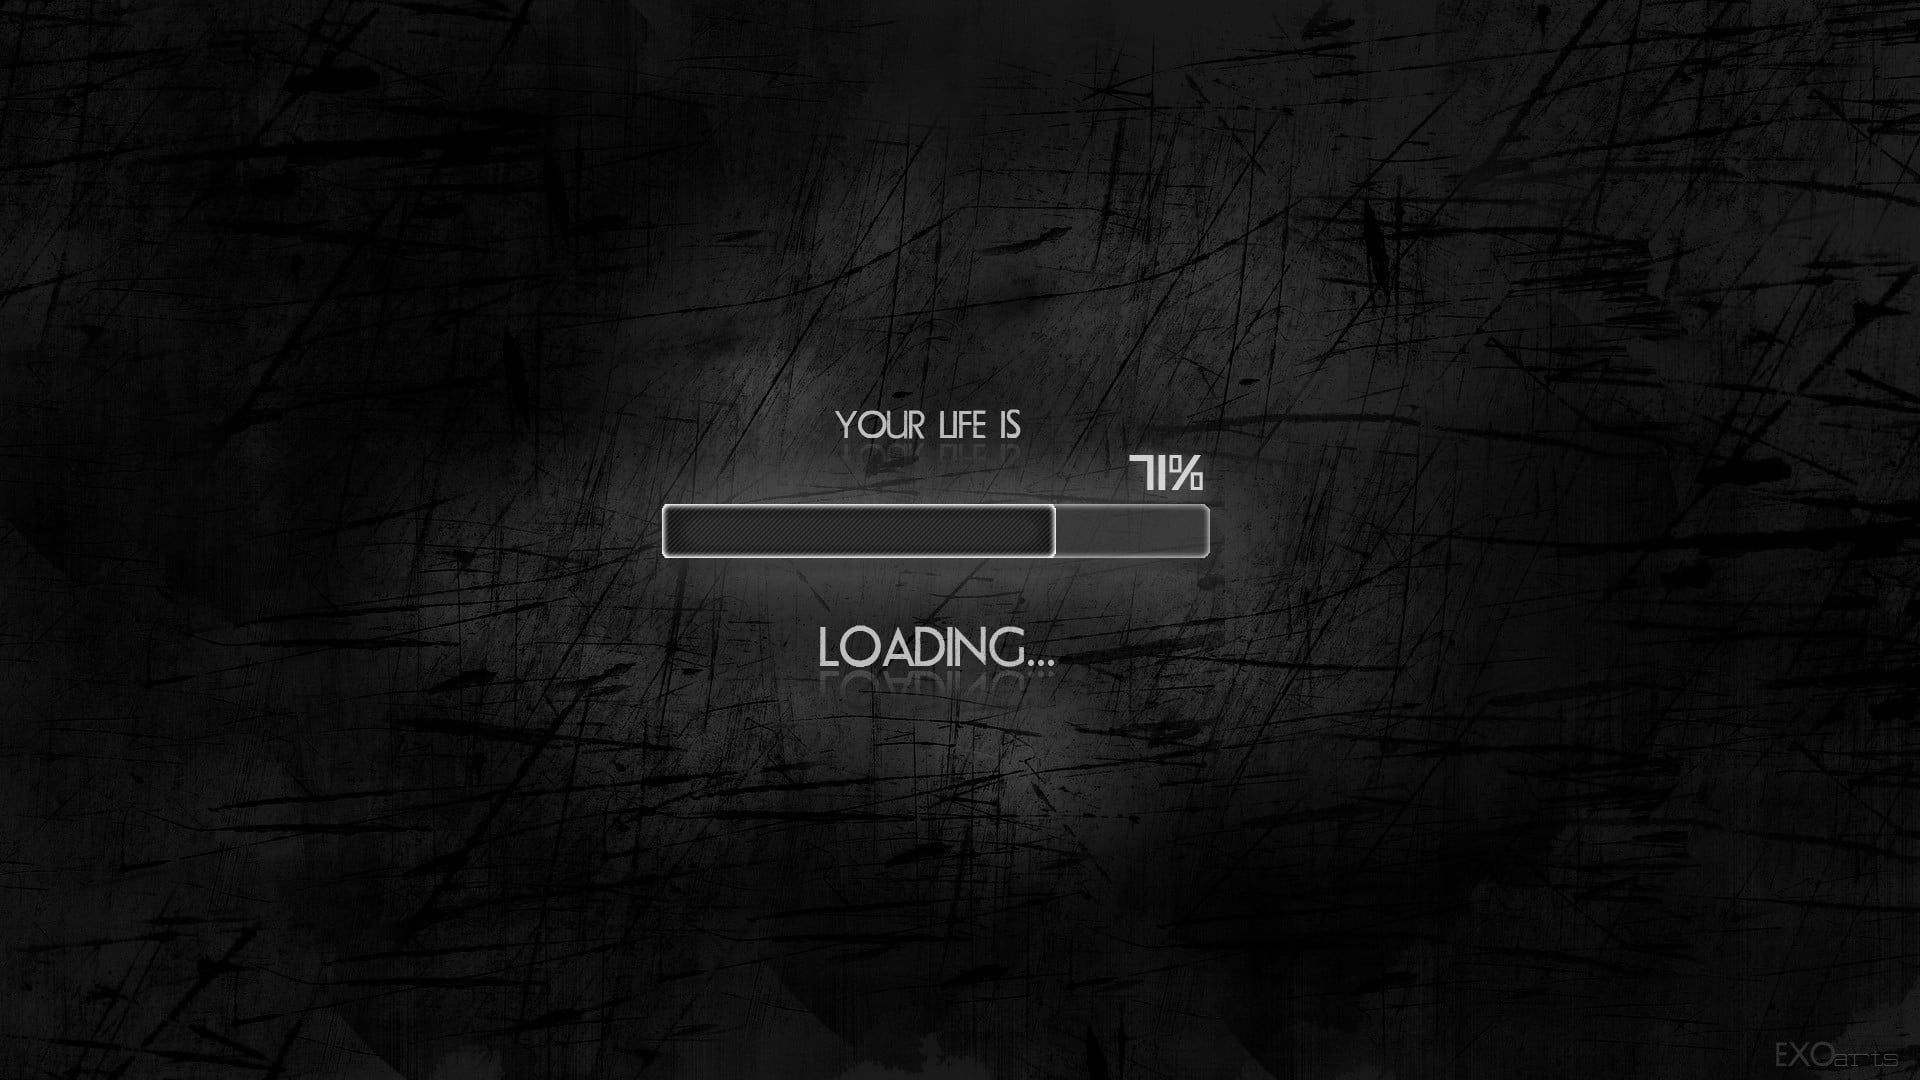 Wallpaper Your Life Is Loading Text Black Minimalism Humor Simple Background In 2020 Desktop Wallpaper Motivational Wallpapers Hd Motivational Wallpaper